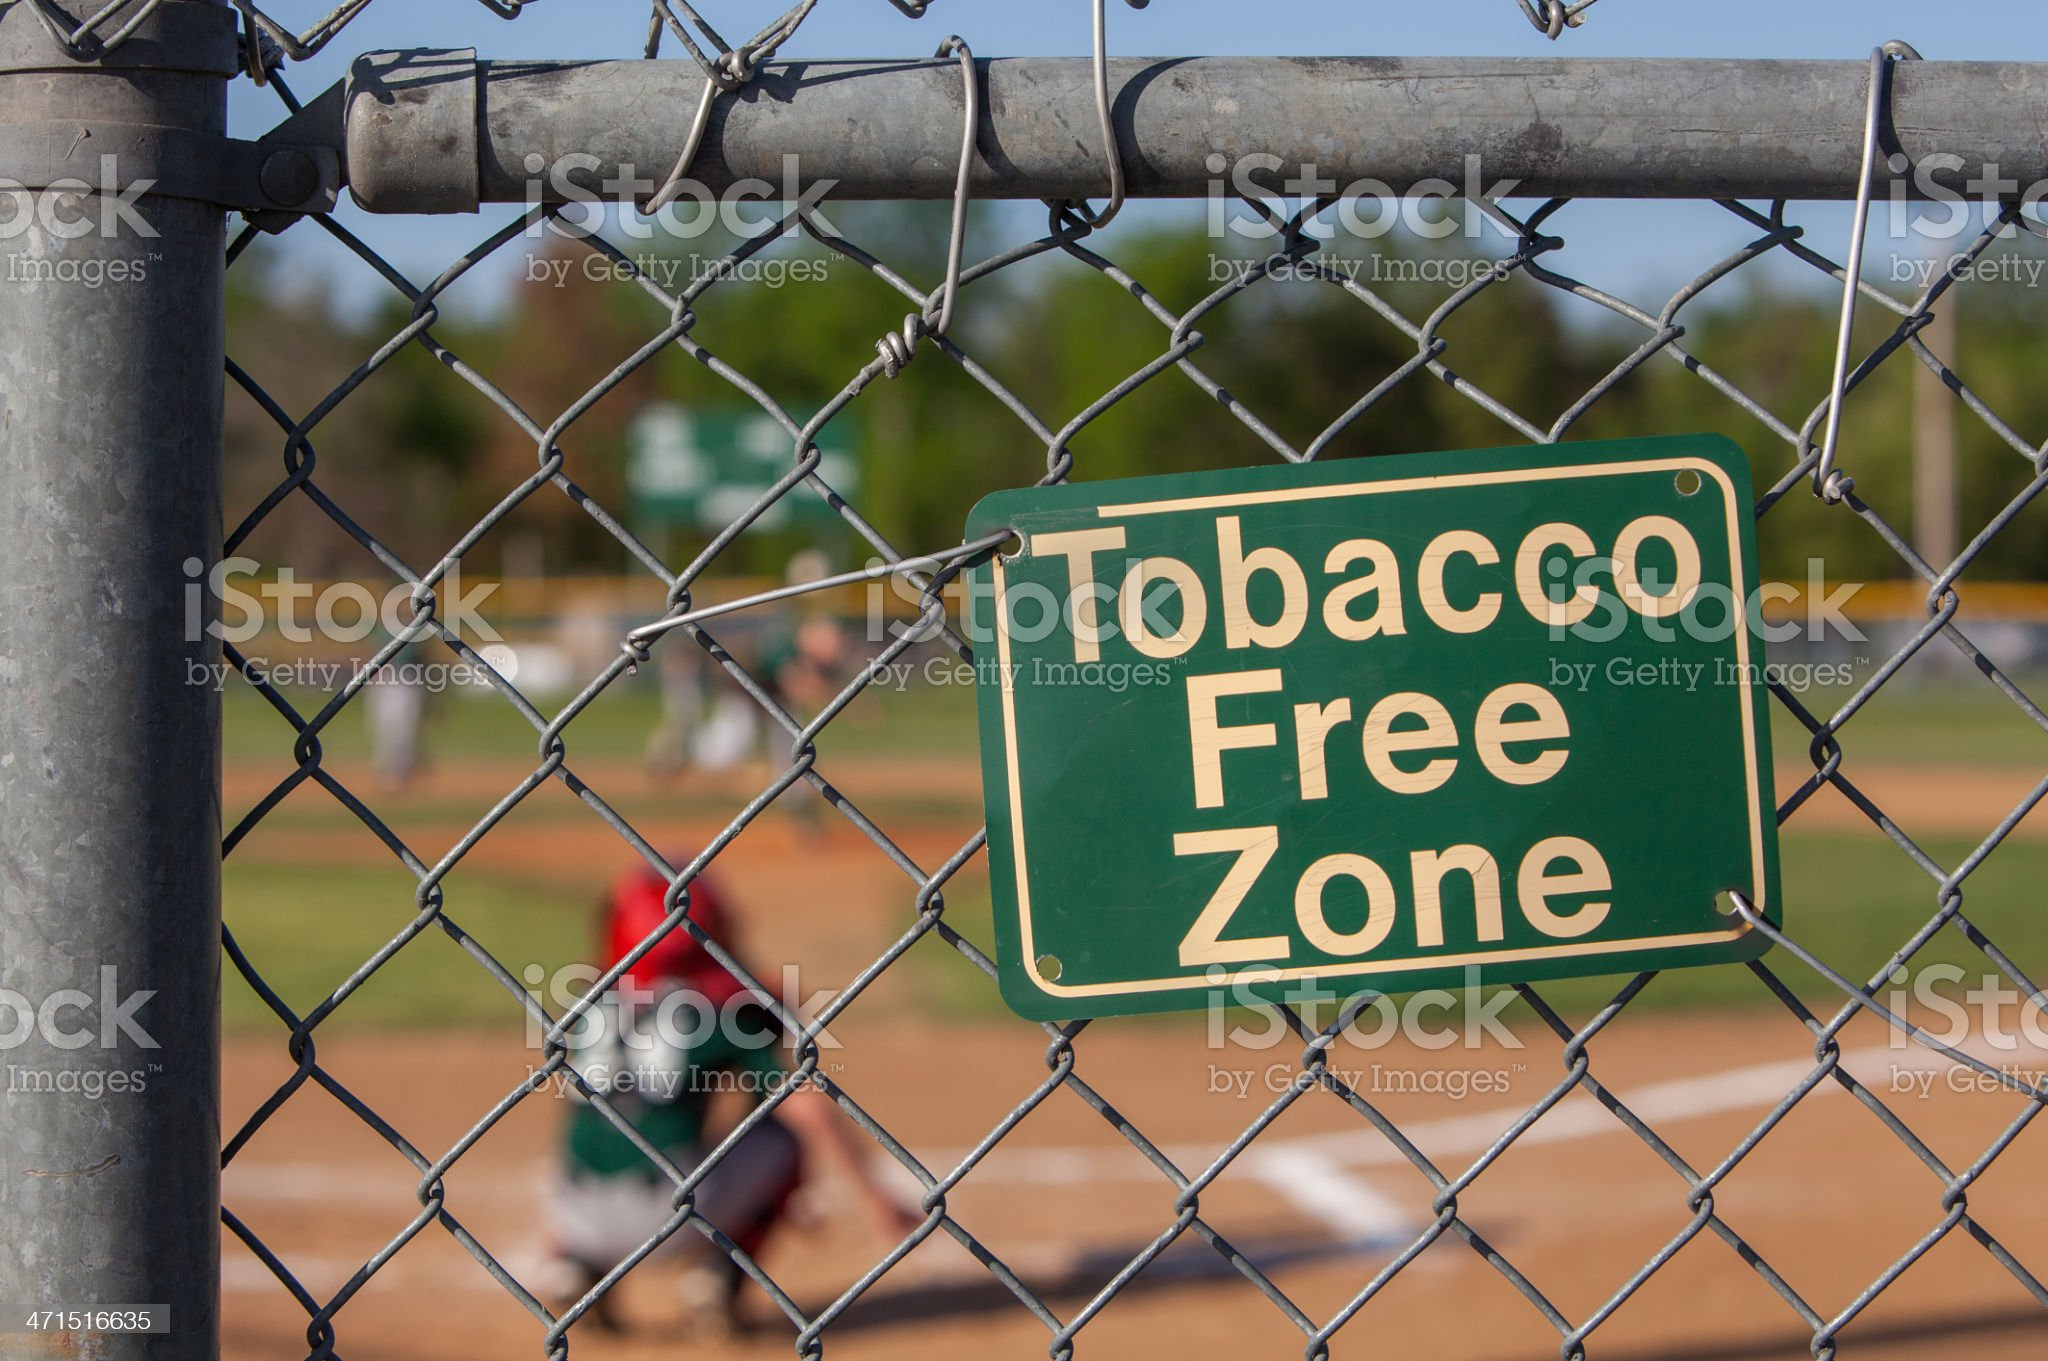 Tobacco free zone one royalty-free stock photo